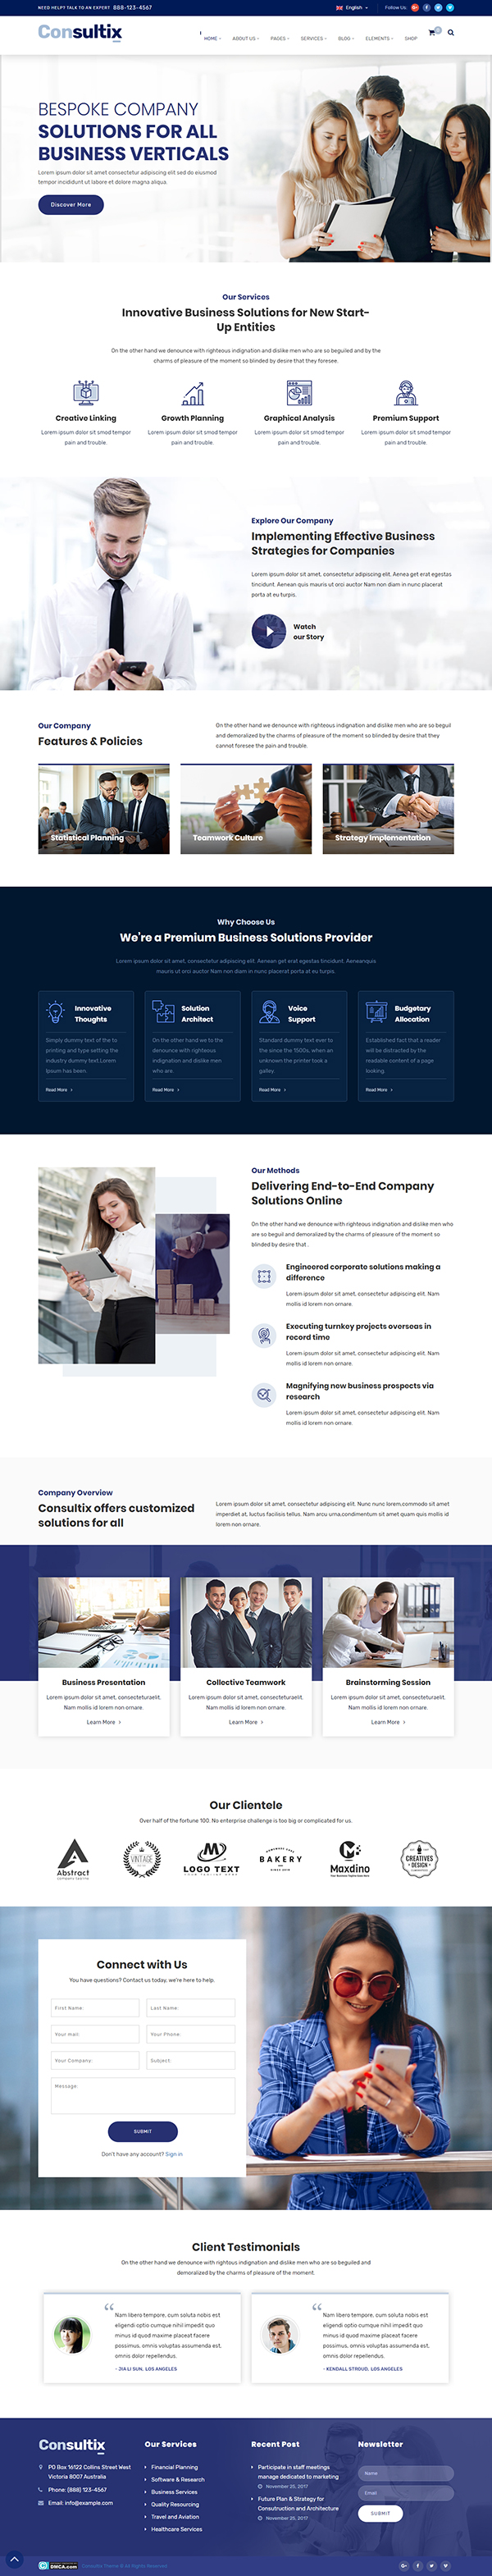 Consultix - Consulting WordPress Theme